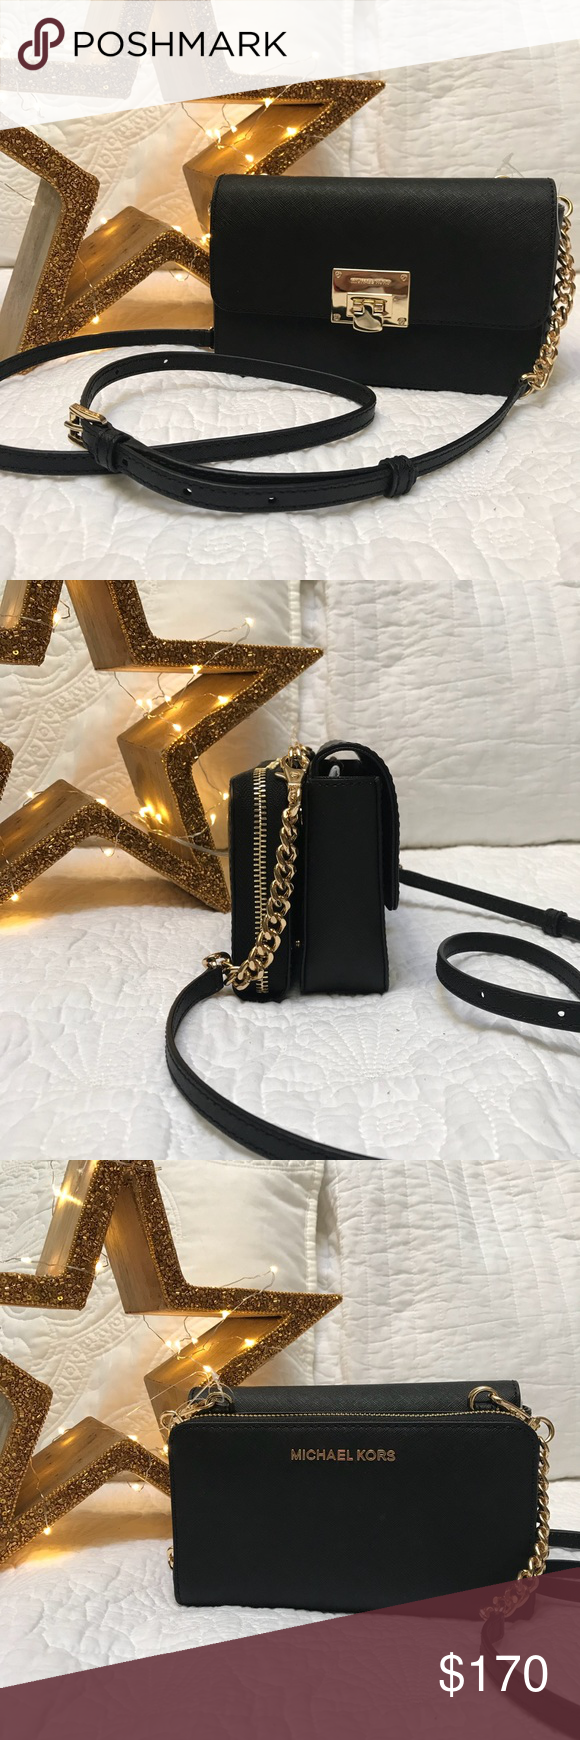 cdcf781bec95 Michael Kors Tina 2 in 1 Wallet Clutch Crossbody New✨With tags✨ Strap  Drop22in. MaterialLeather StyleCrossbody Modification DescriptionMICHAEL  Michael ...